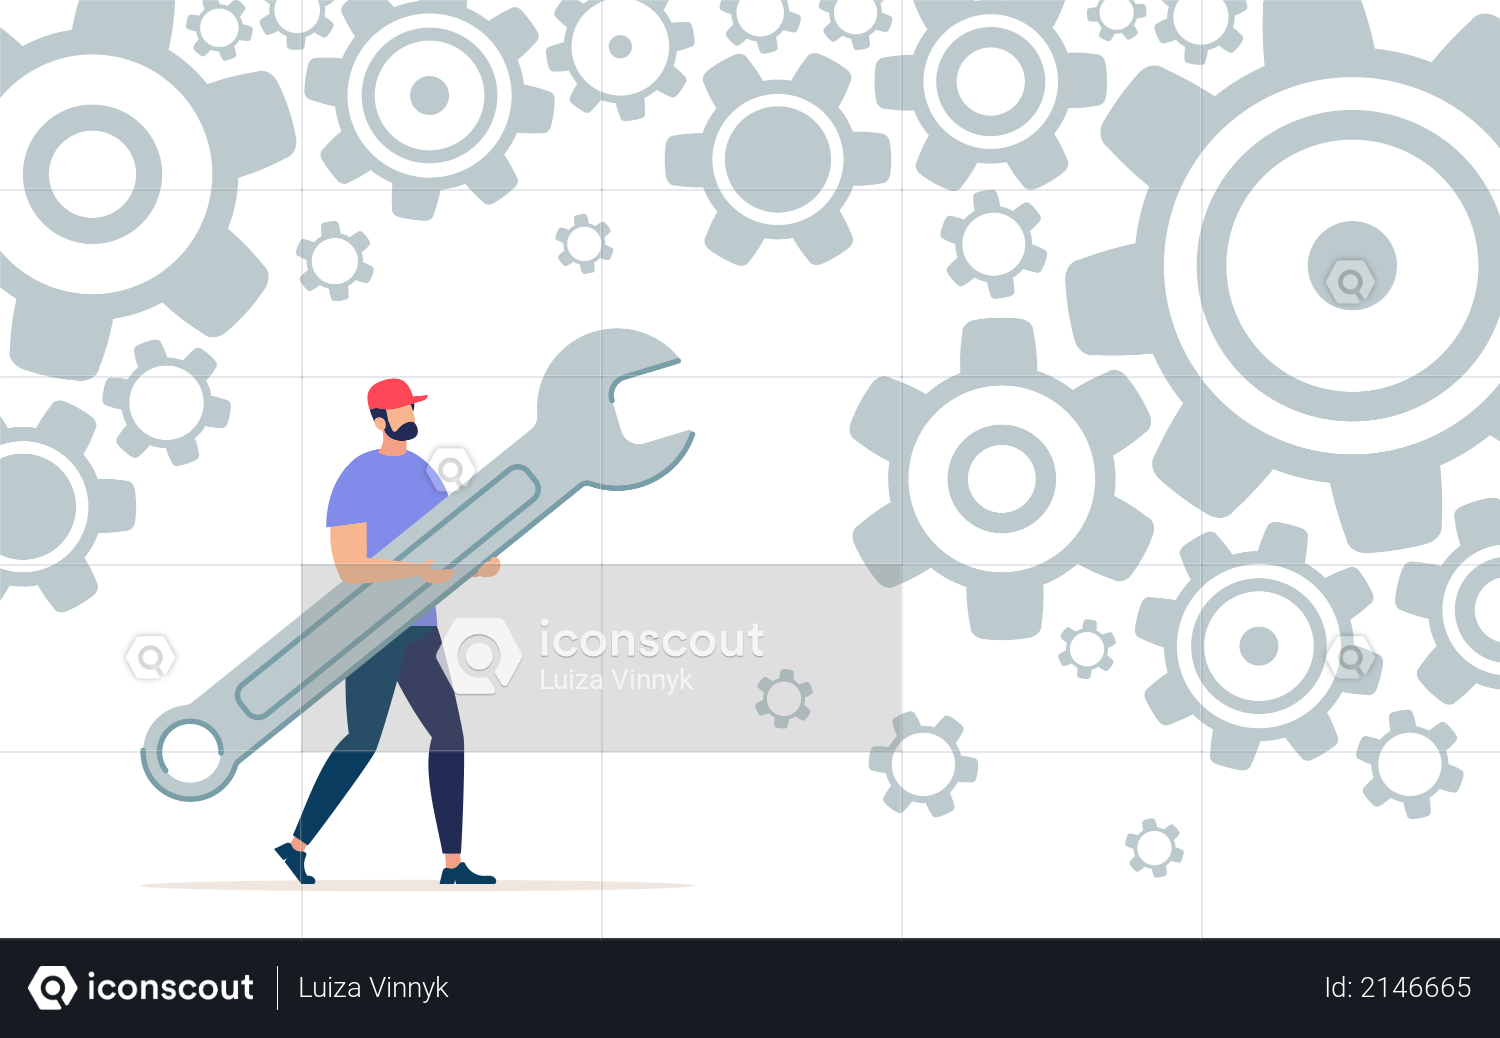 Working with Wrench Illustration